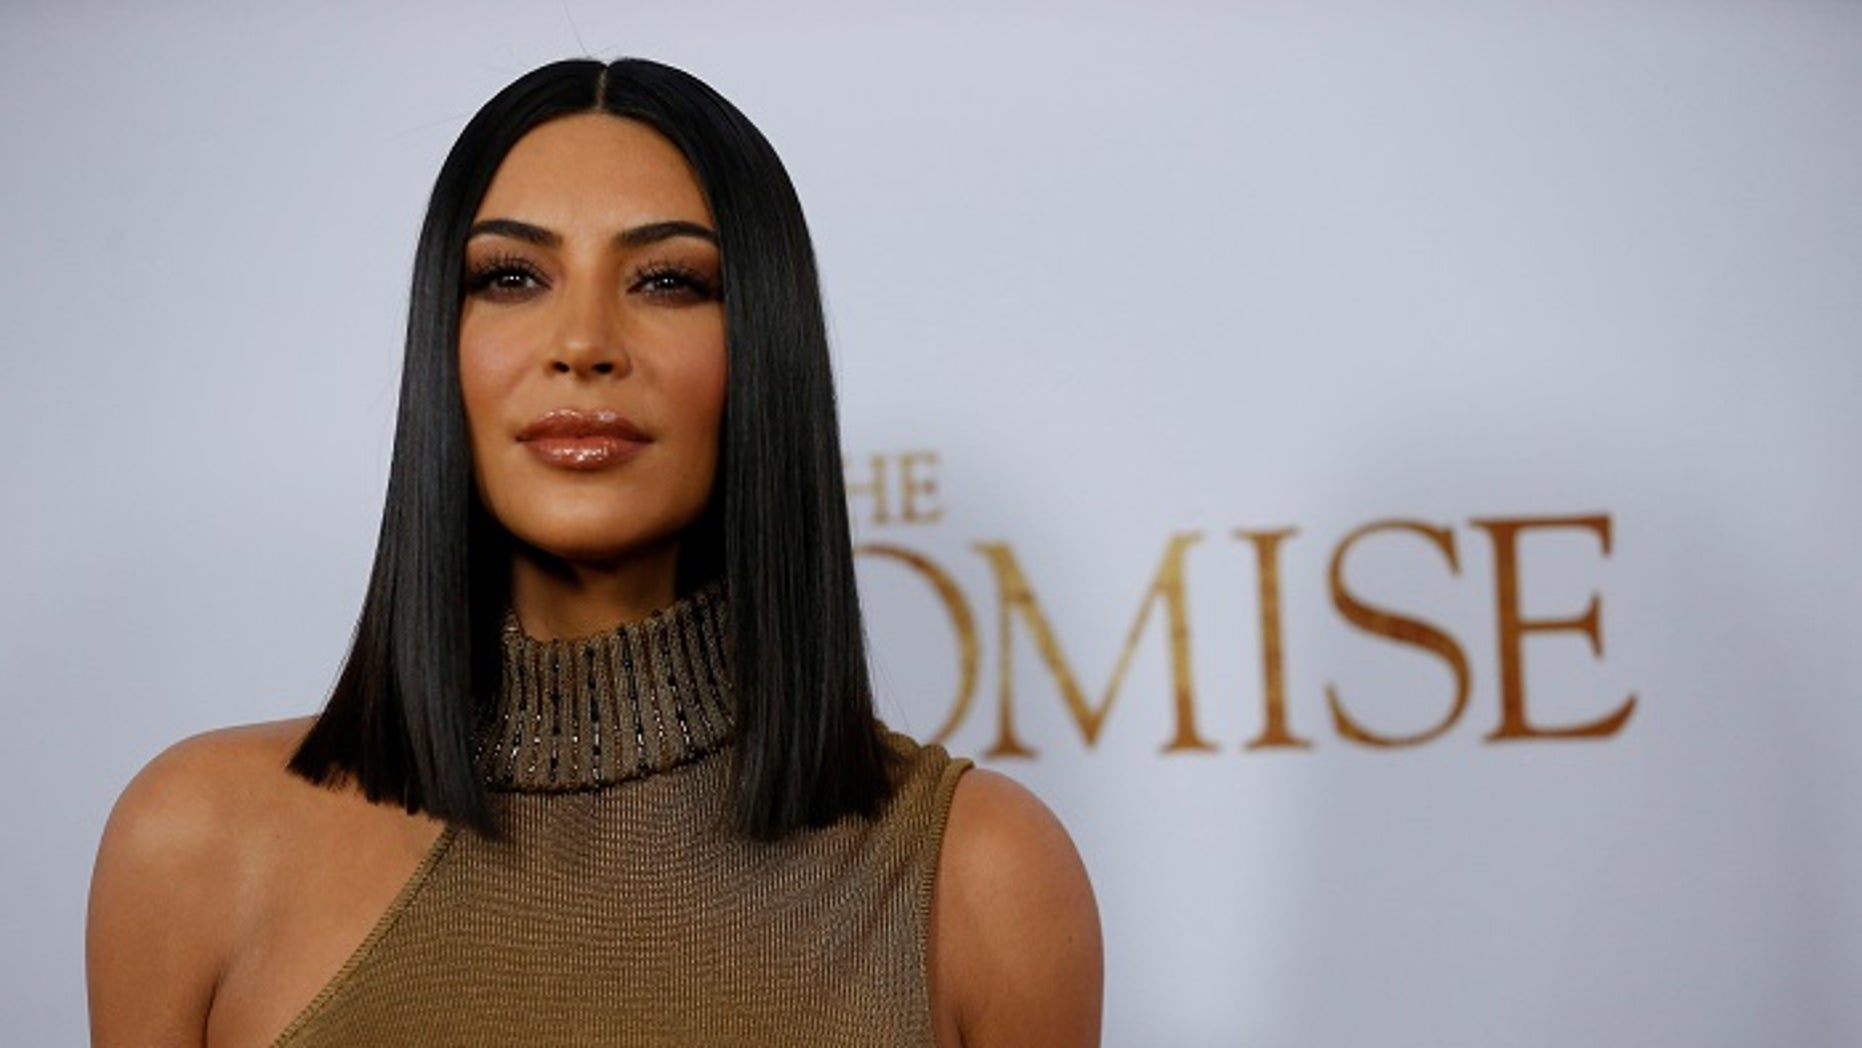 Kim Kardashian posted a nude photo of her on her Instagram Tuesday, Sept. 5, 2017.